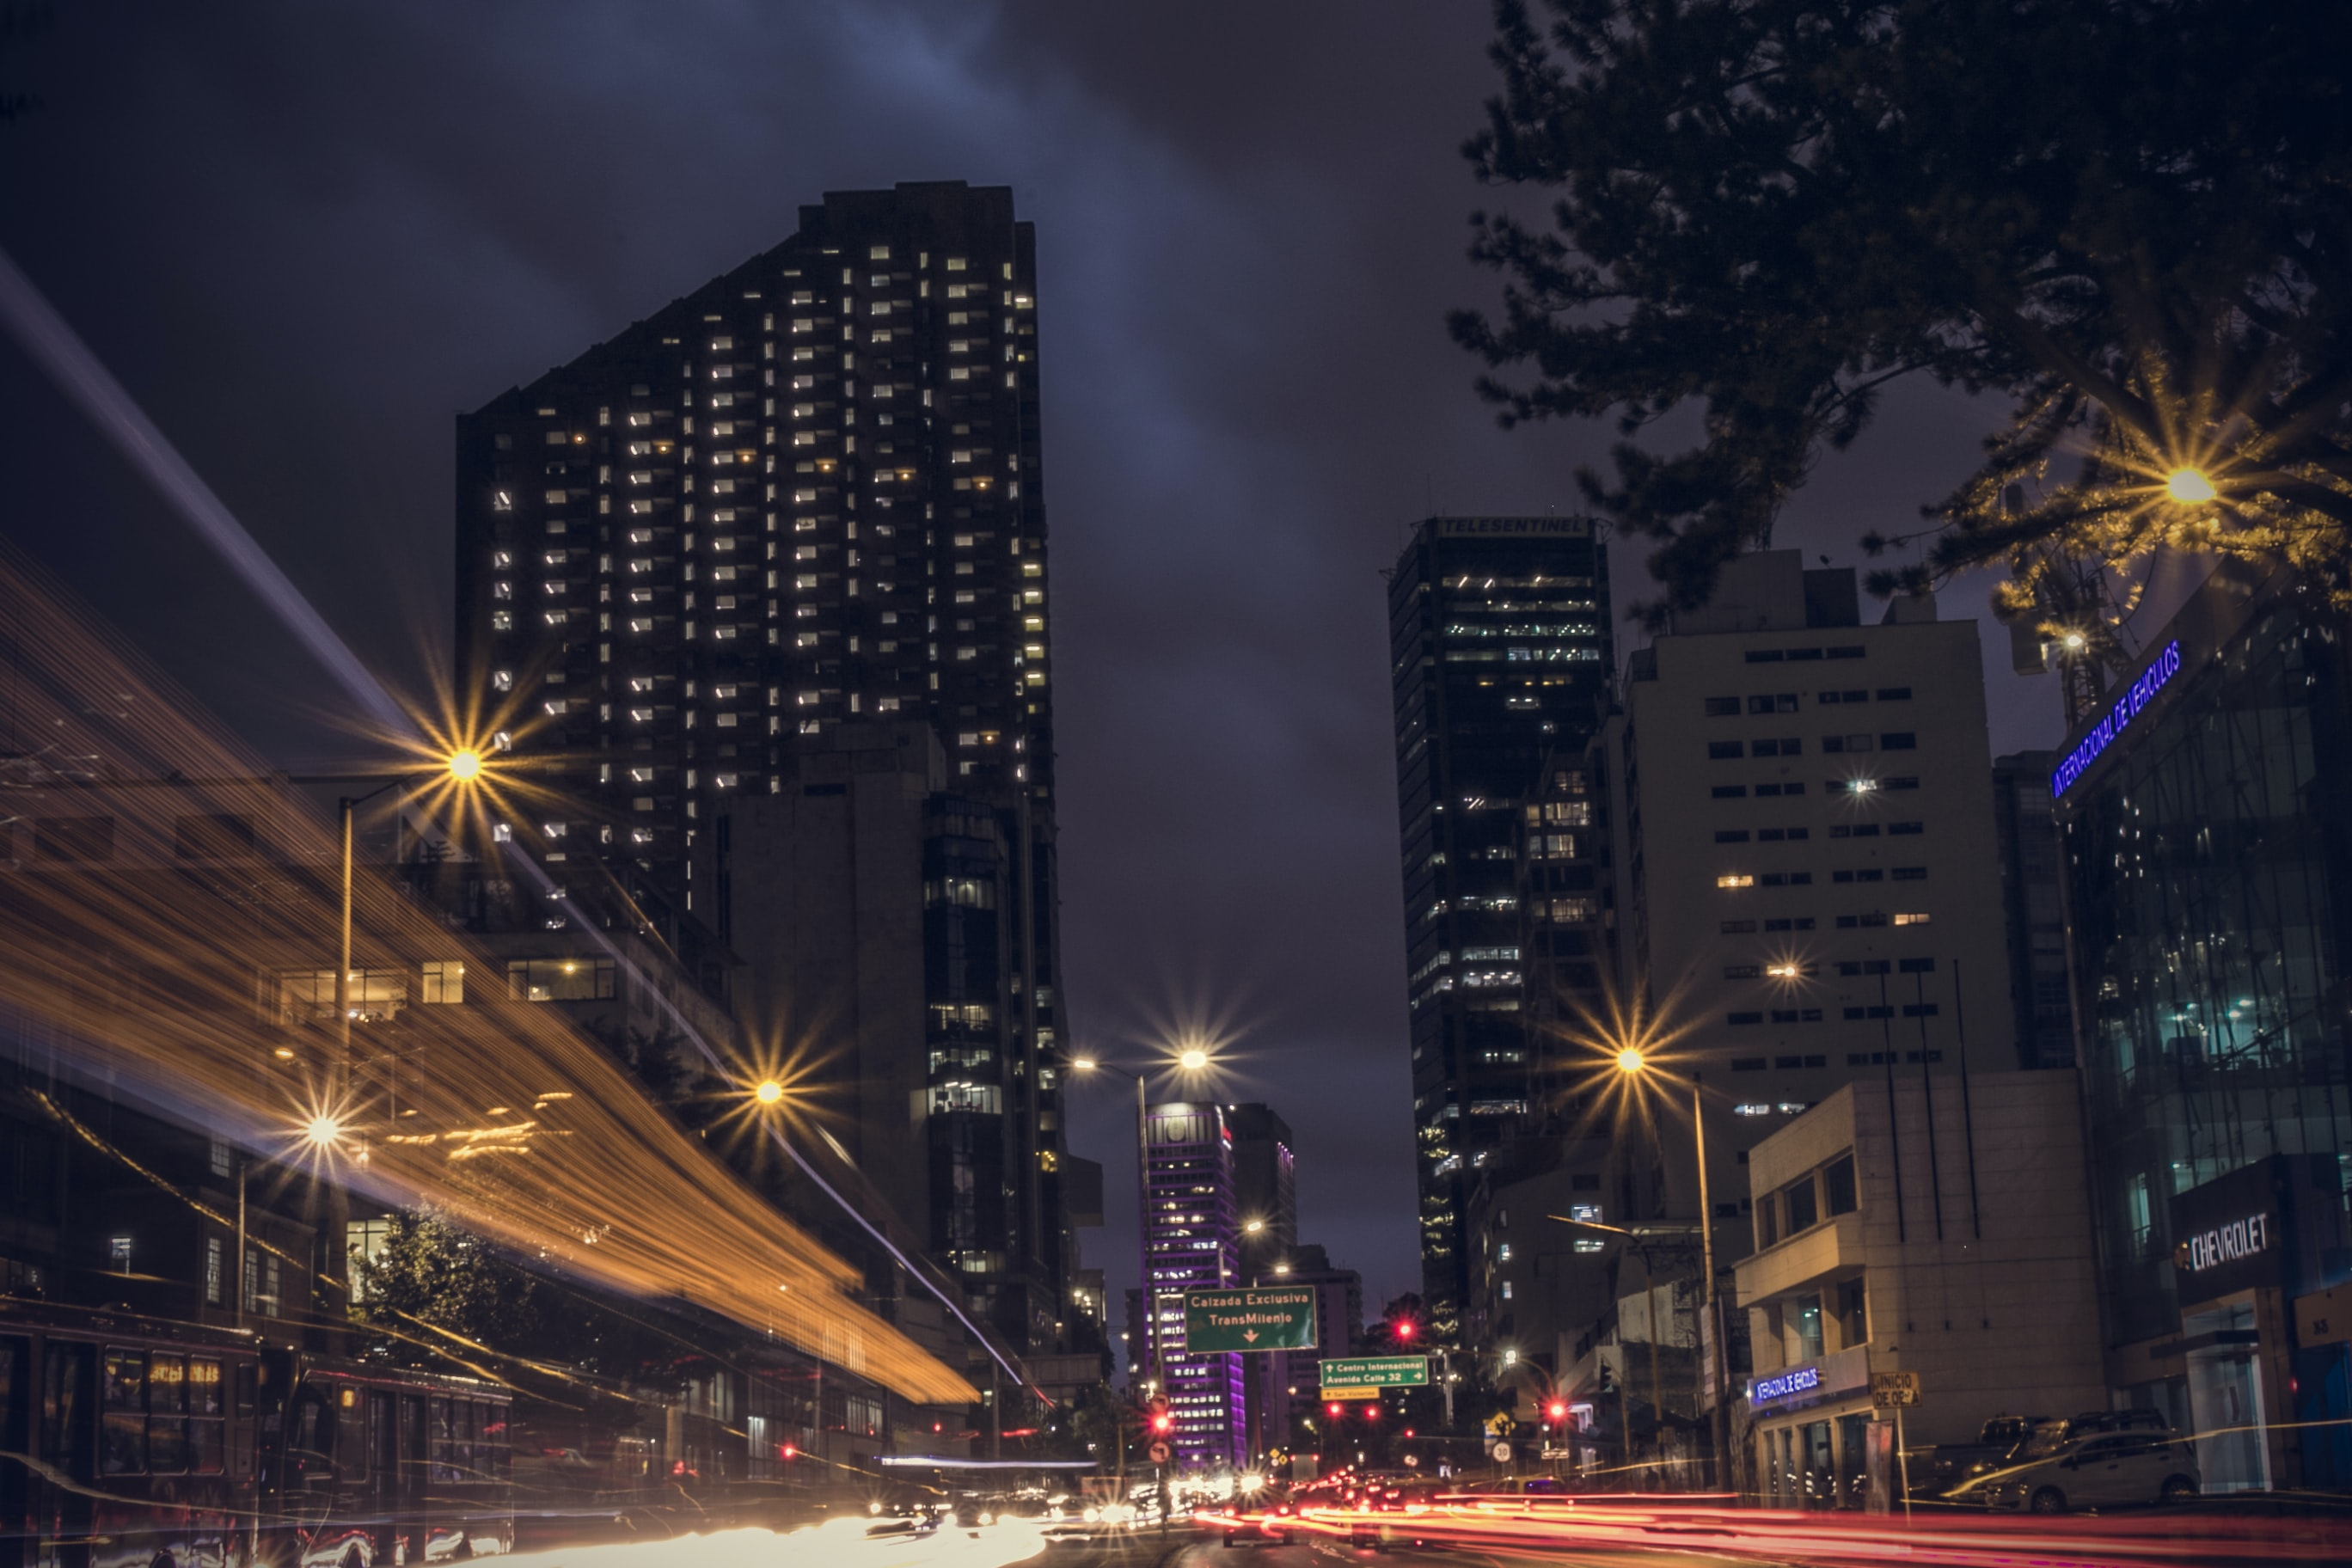 A dark city background featuring large buildings and street light trails in Bogotá